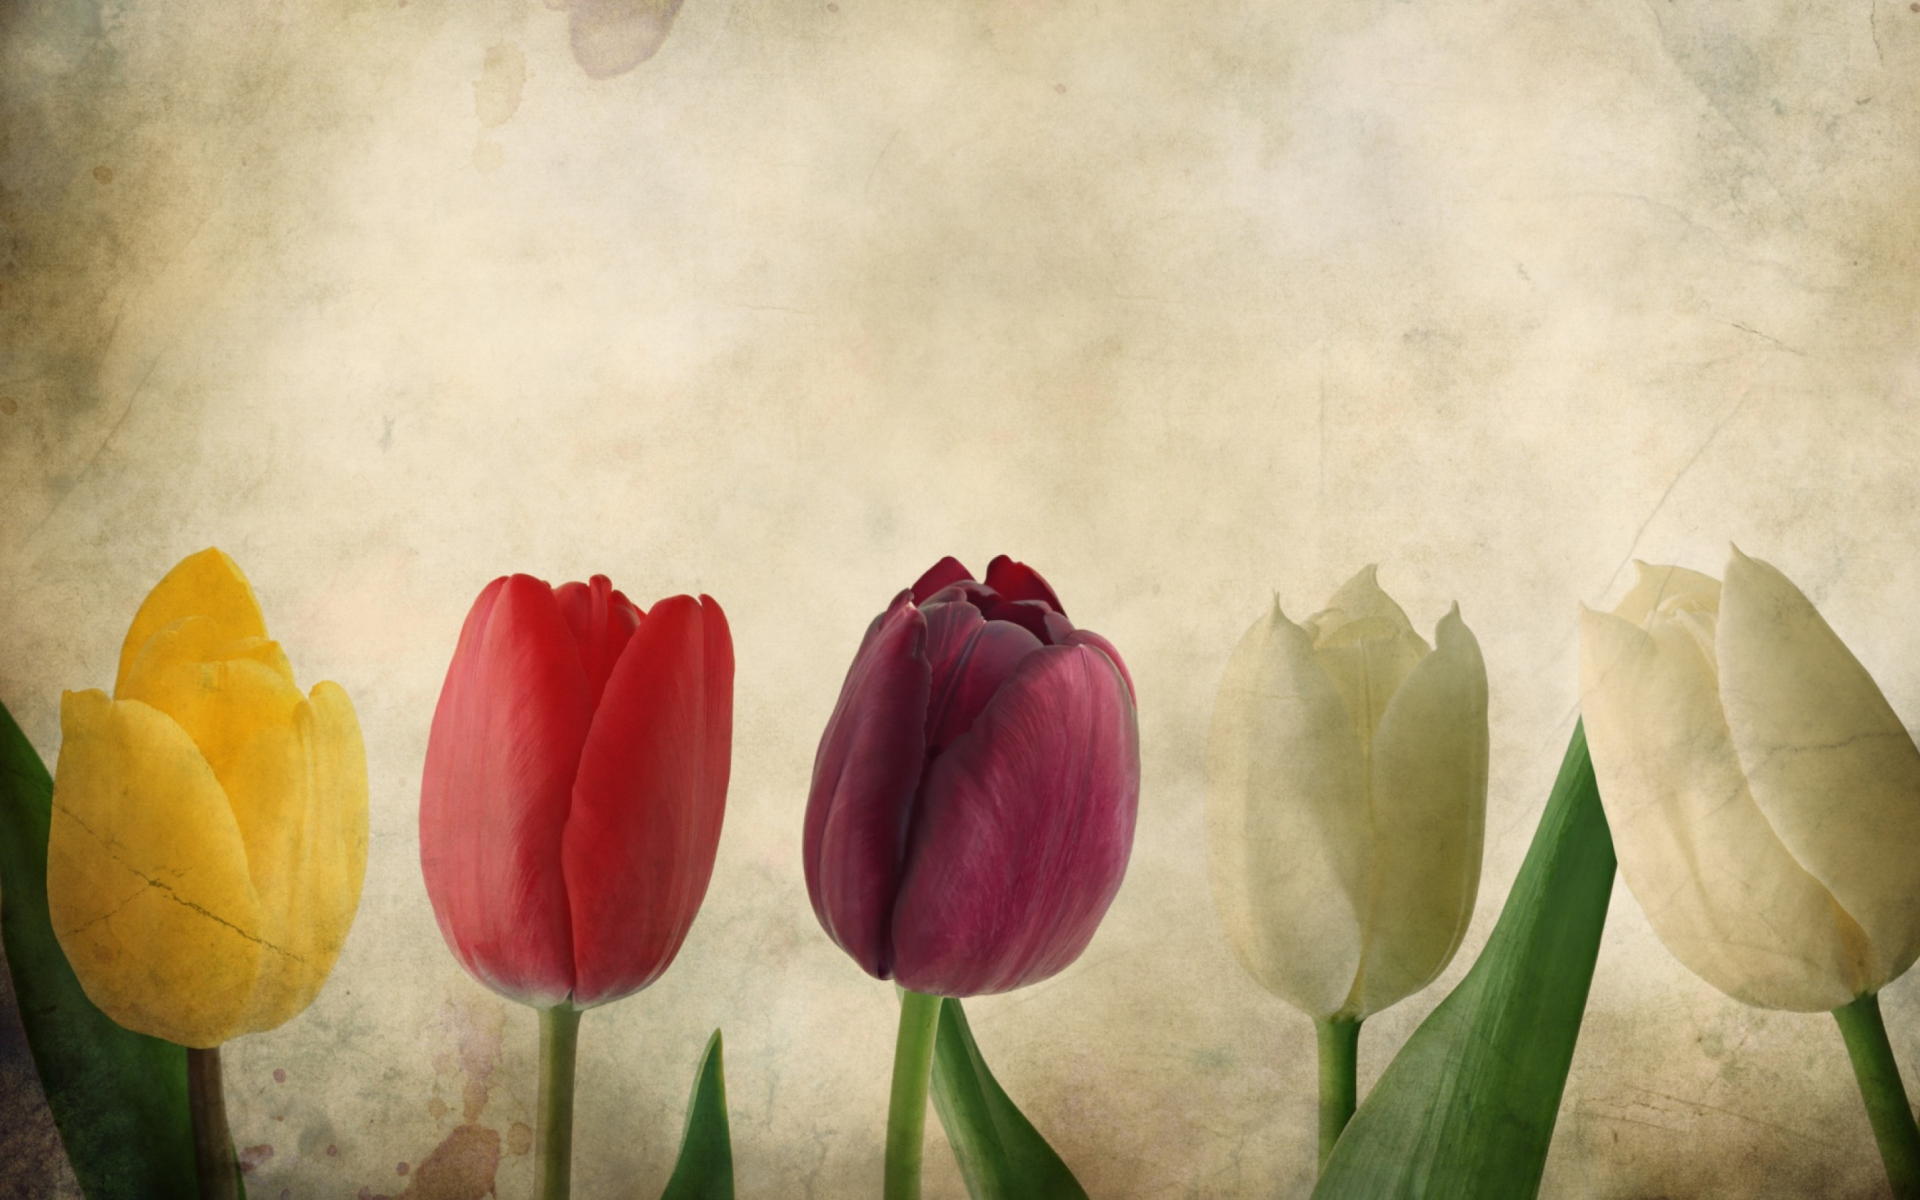 Tulips Vintage Wallpaper For Widescreen Desktop Pc